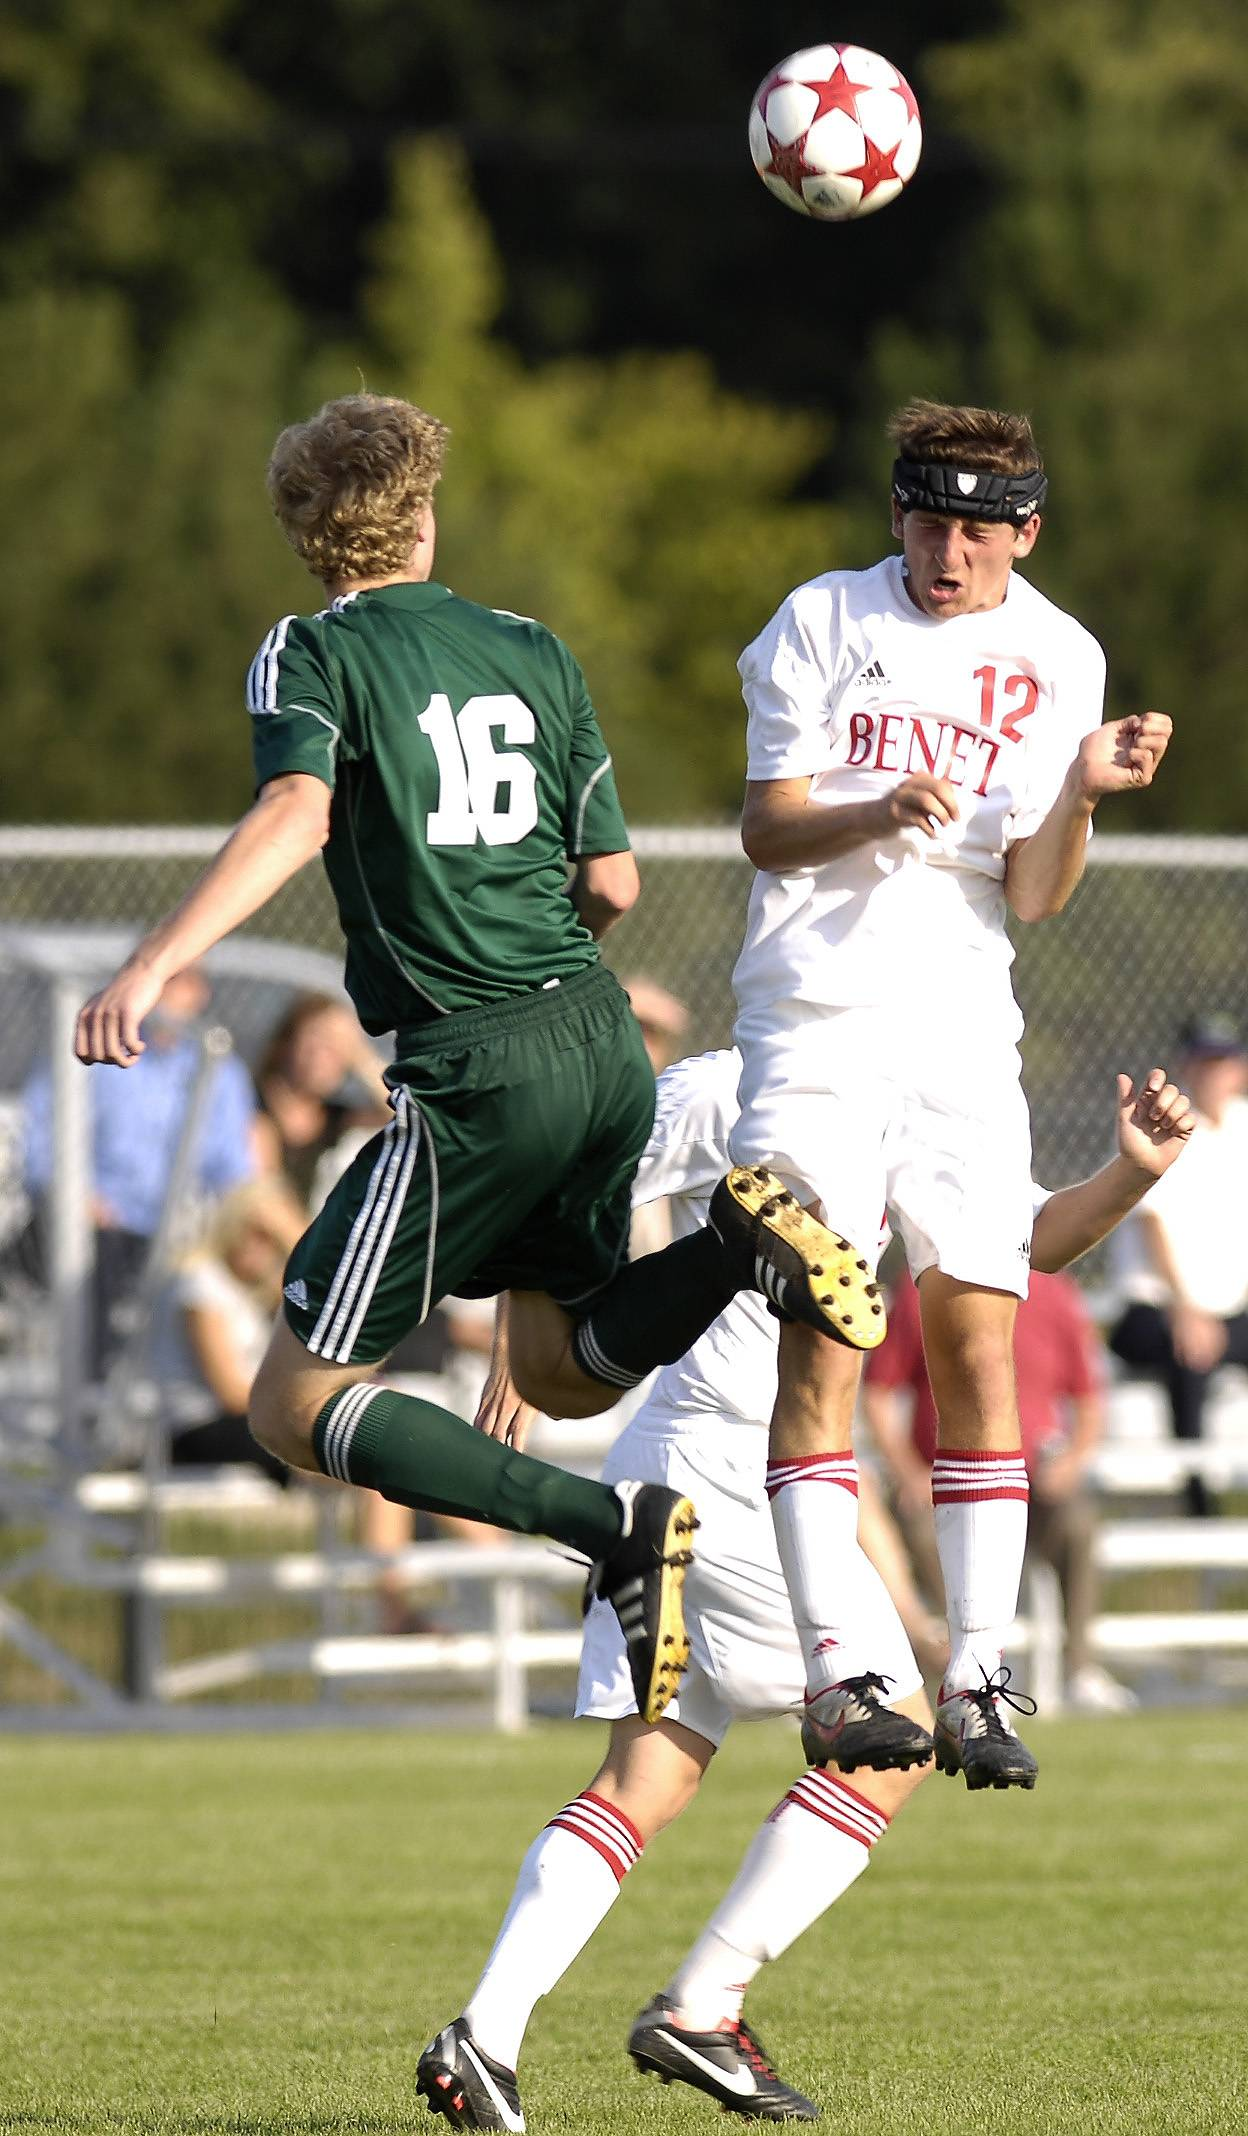 Mark Black/mblack@dailyherald.com ¬ Jack Cordes of Waubonsie Valley and Kyle Kenagy of Benet work for control of the ball during in boy soccer action in Lisle, Thursday.